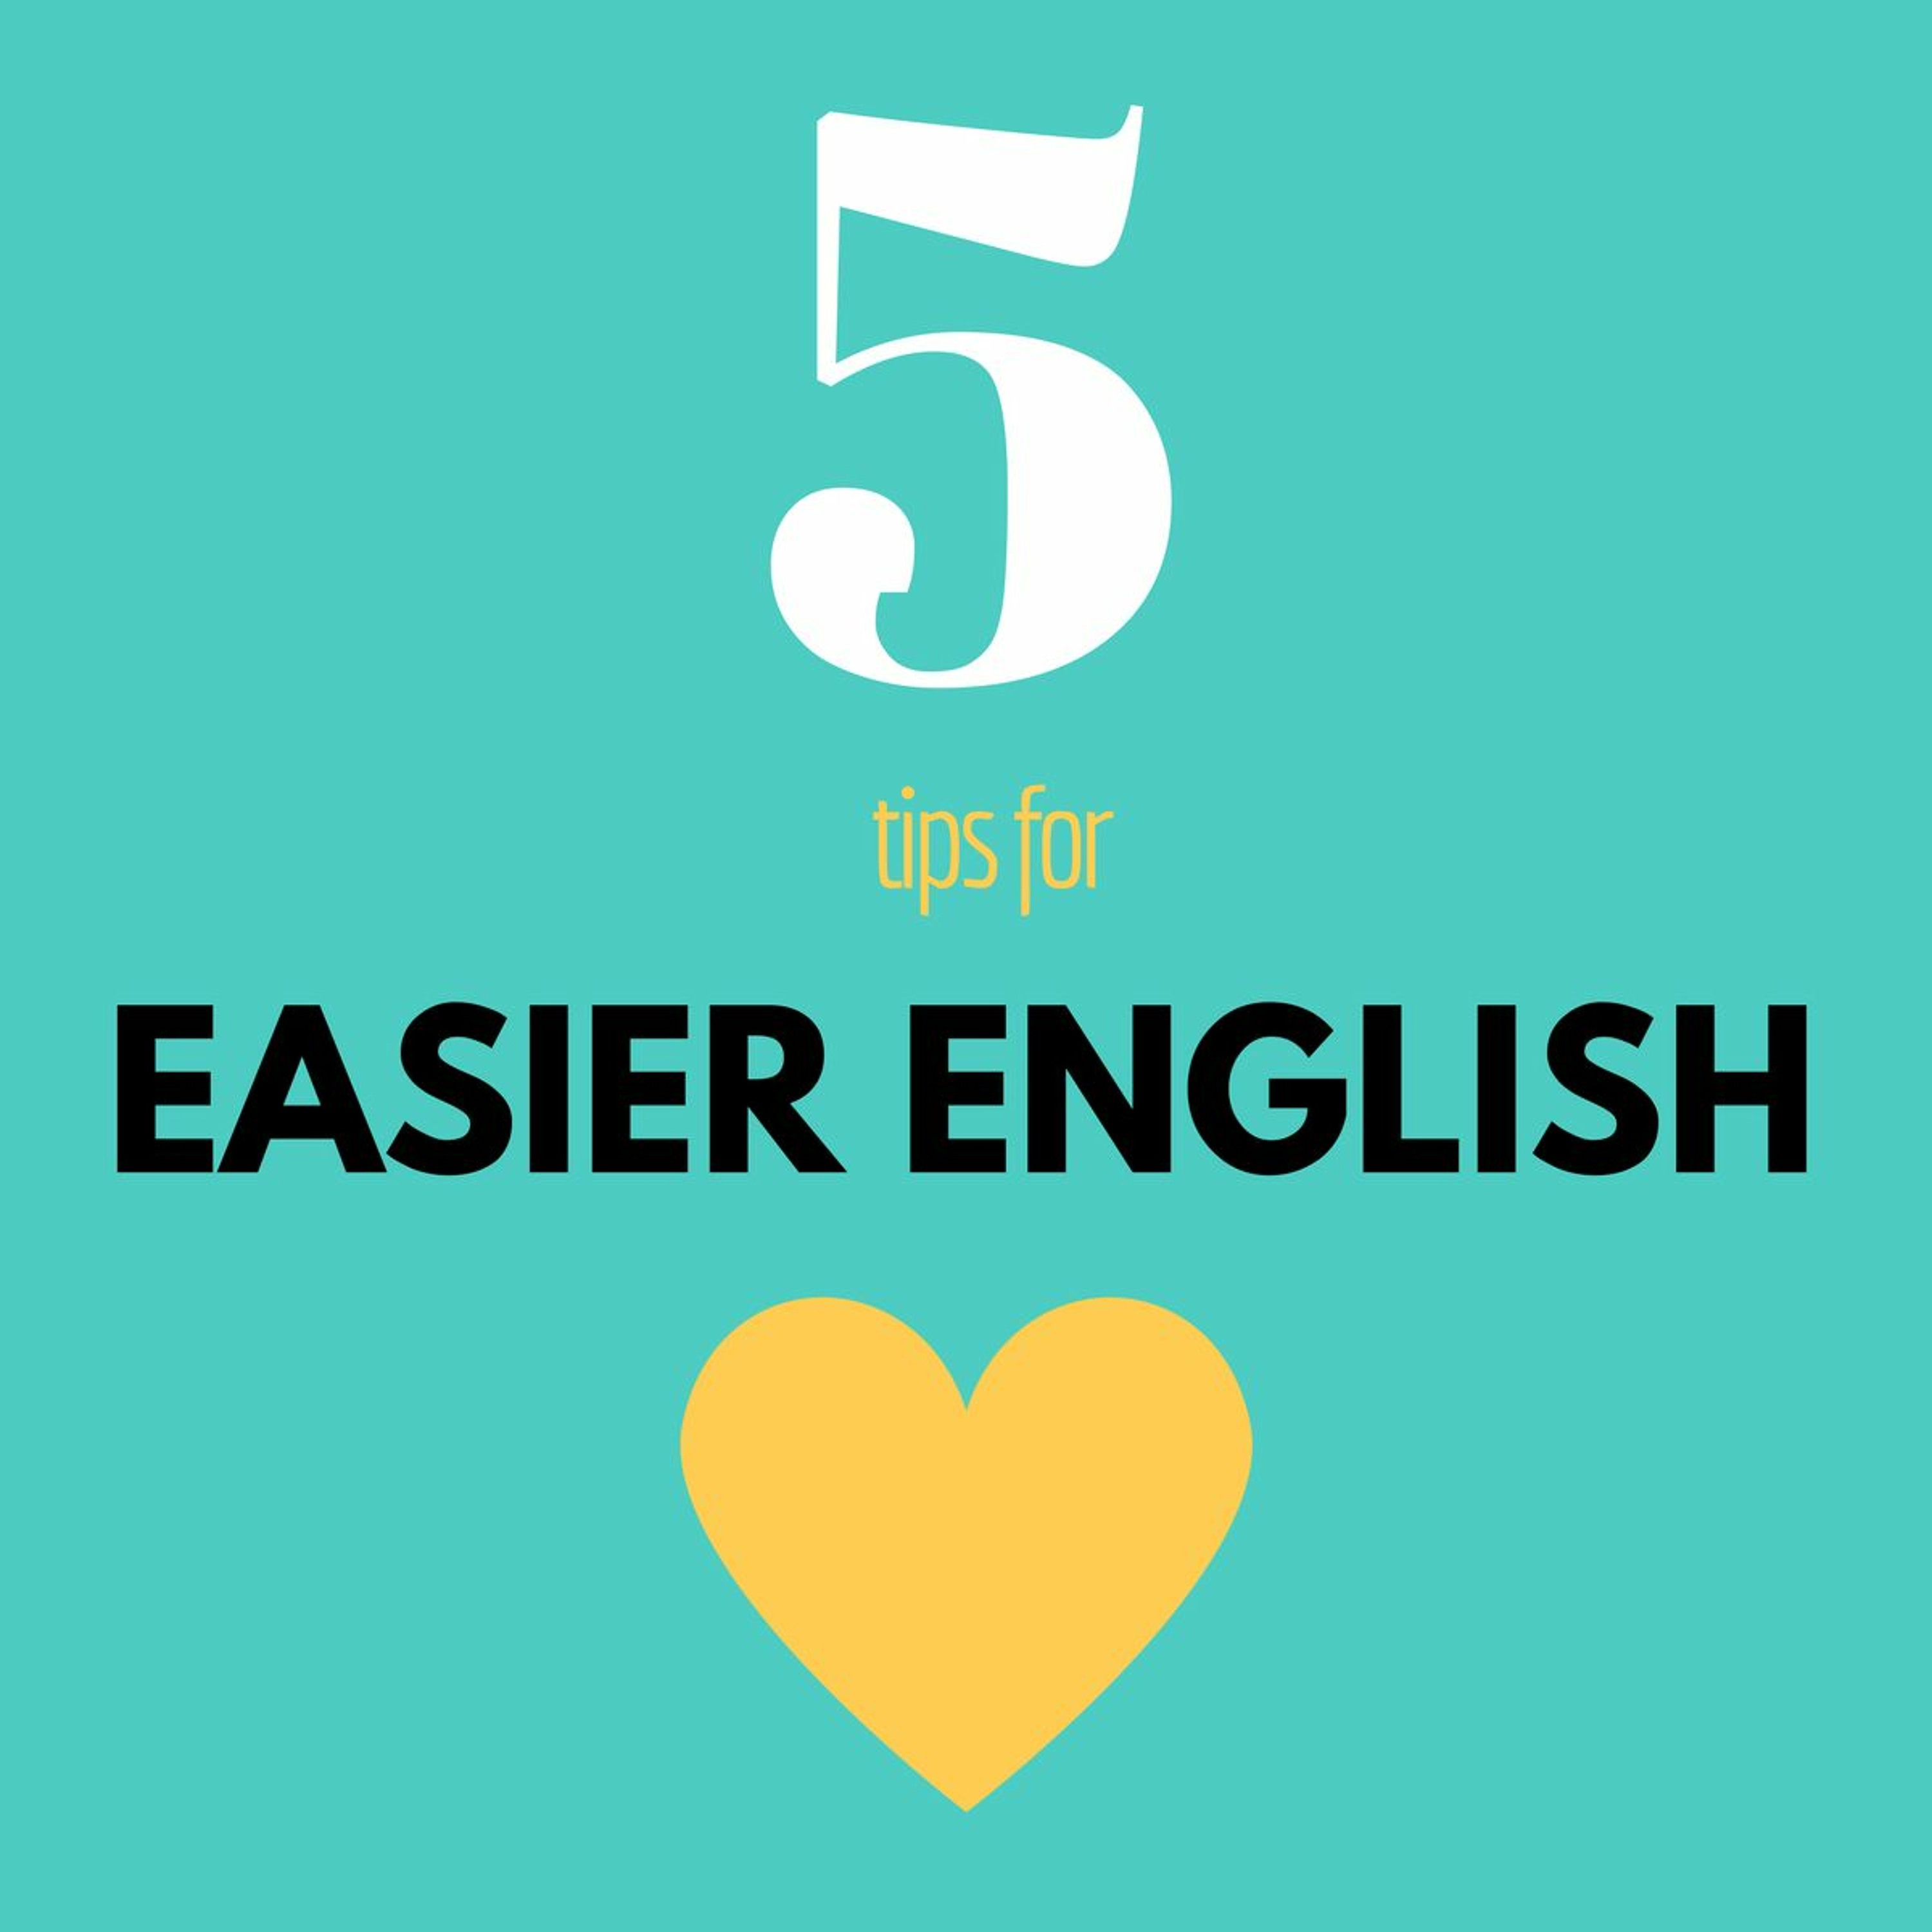 Welcome to Love Learning English